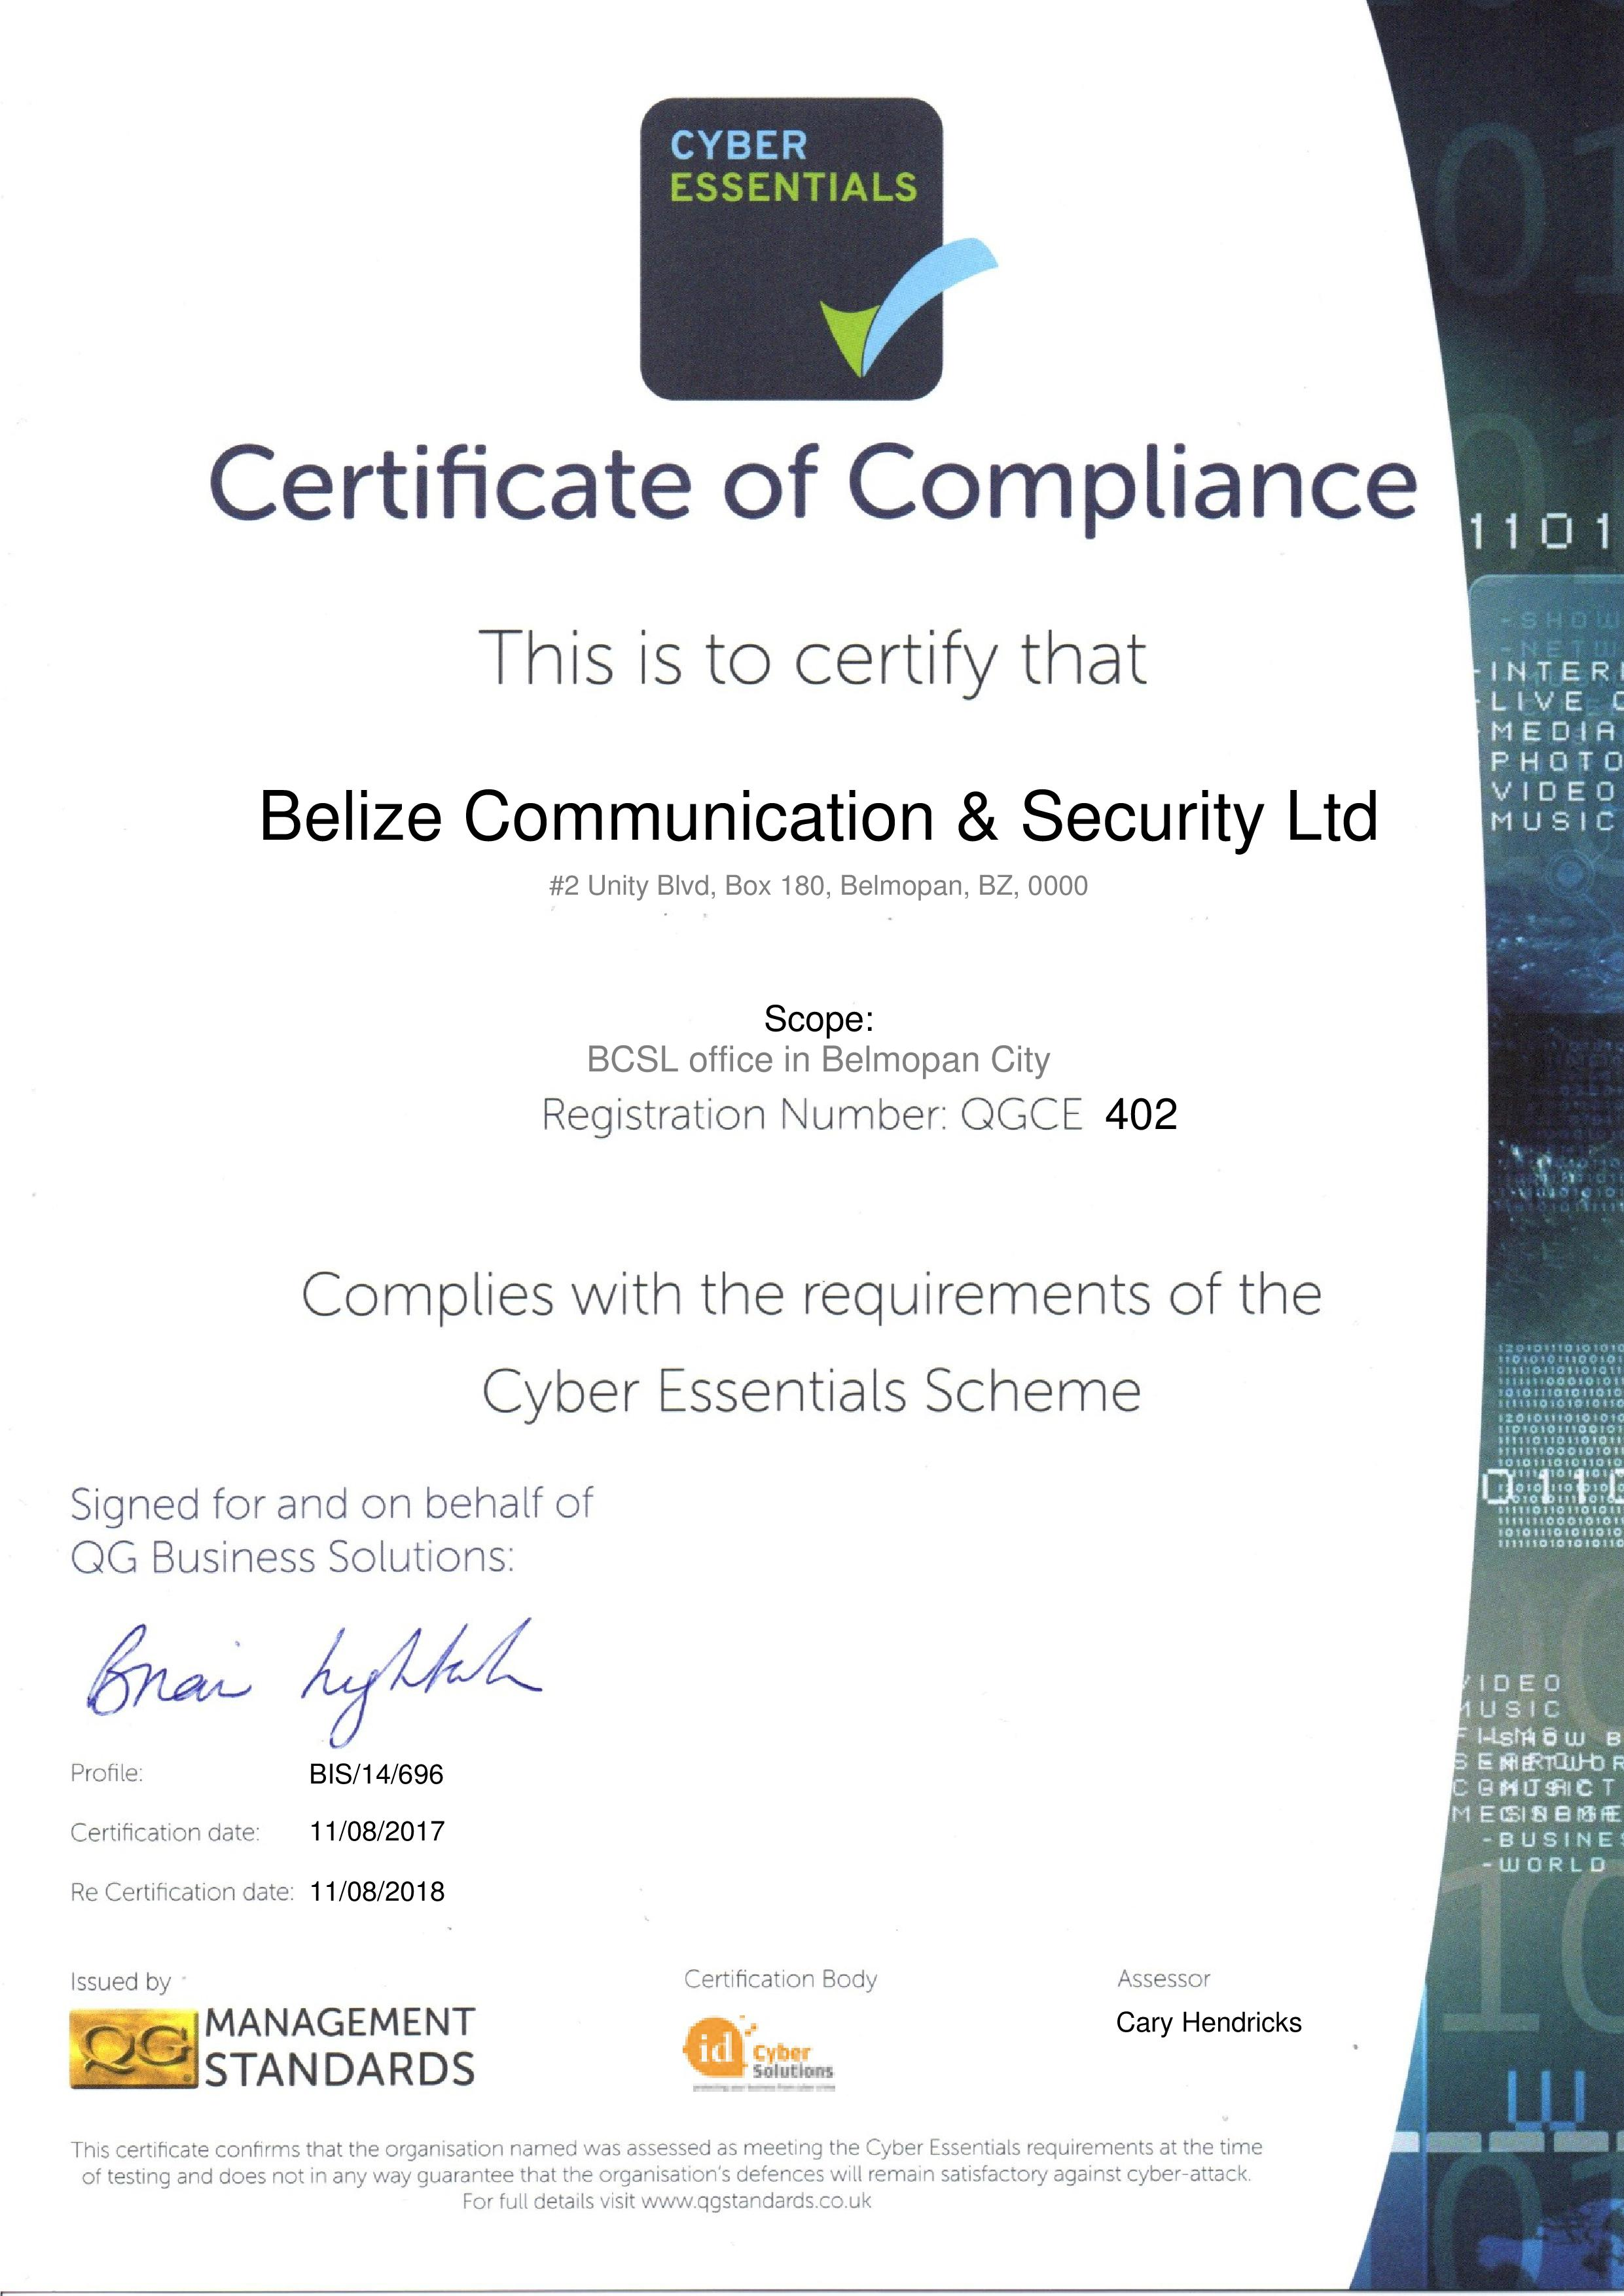 QGCE402 Belize Communication & Security Ltd